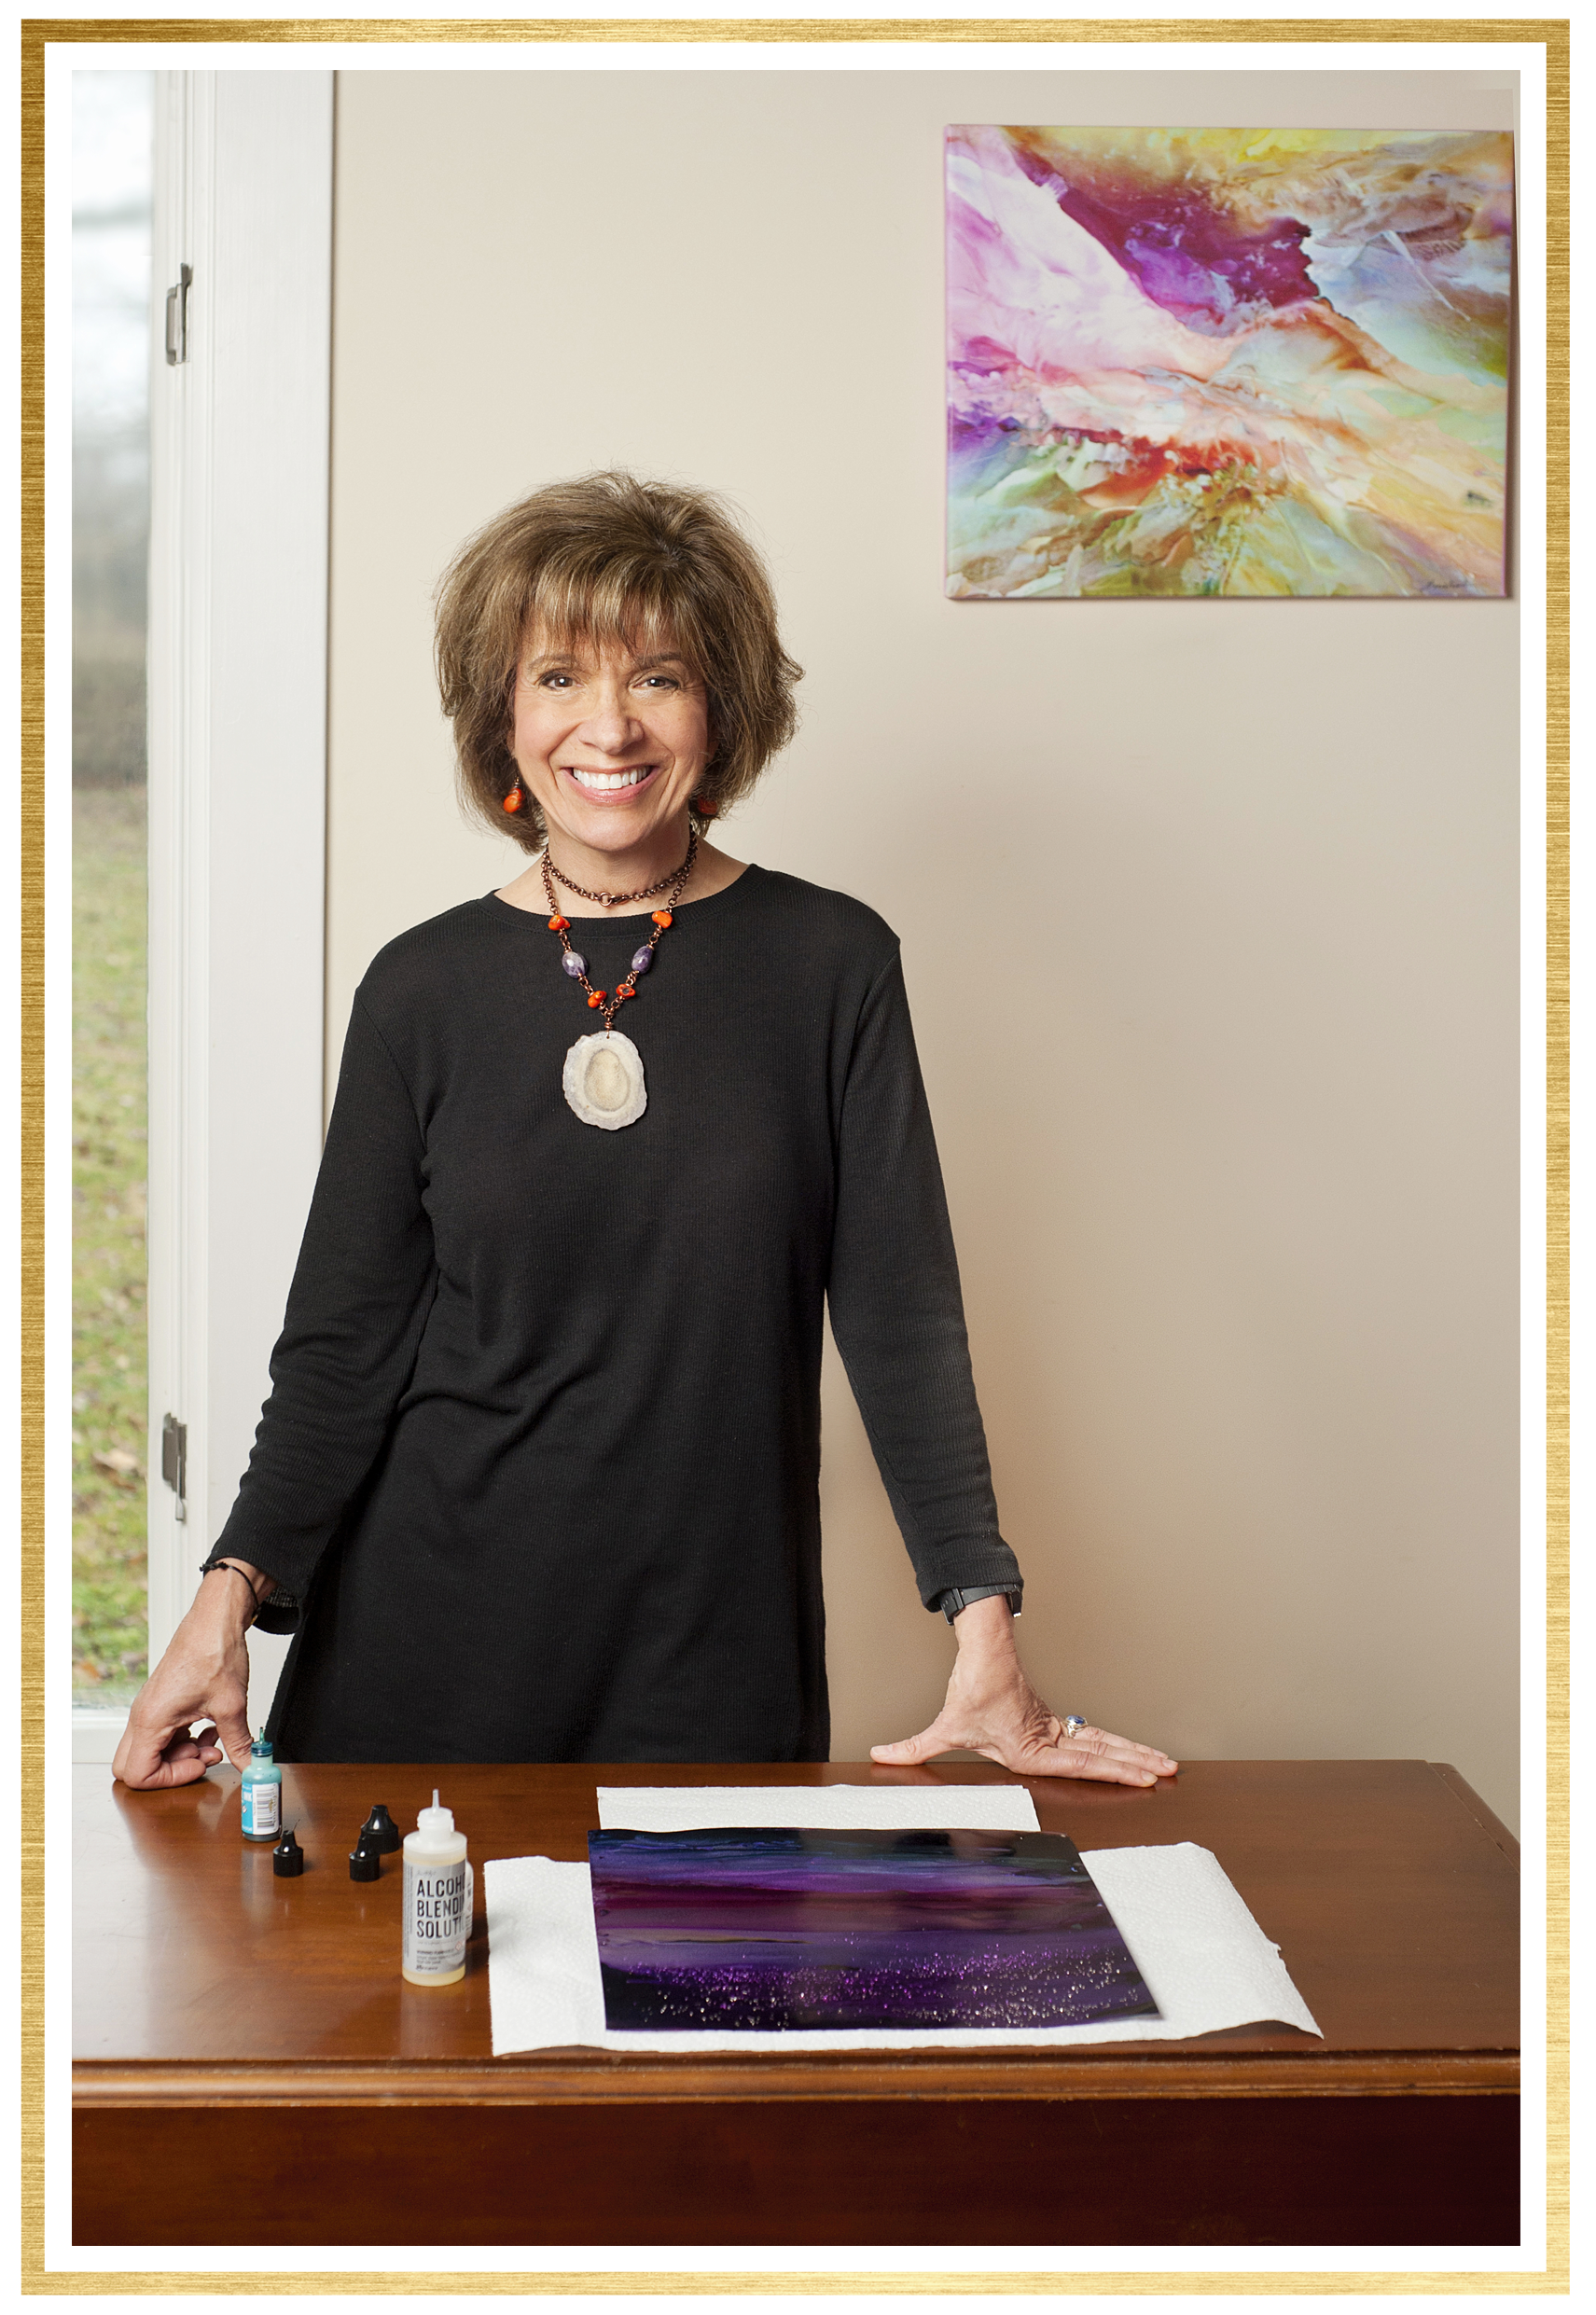 I'm Alexis Bonavitacola. - I'm an artist, teacher, mentor, entrepreneur, and passionate human being dedicated to leading a purposeful life.I specialize in abstract art, especially the energy, motion, and flow of alcohol inks. In addition, I work with encaustic wax and adore the fluidity of the molten wax to create unique floral images. I have 23 years as an educator, hold a PhD in education, love teaching students of all levels, and taking my art to new levels.I believe in the value of sharing our talents and giving back to inspire others to grow.